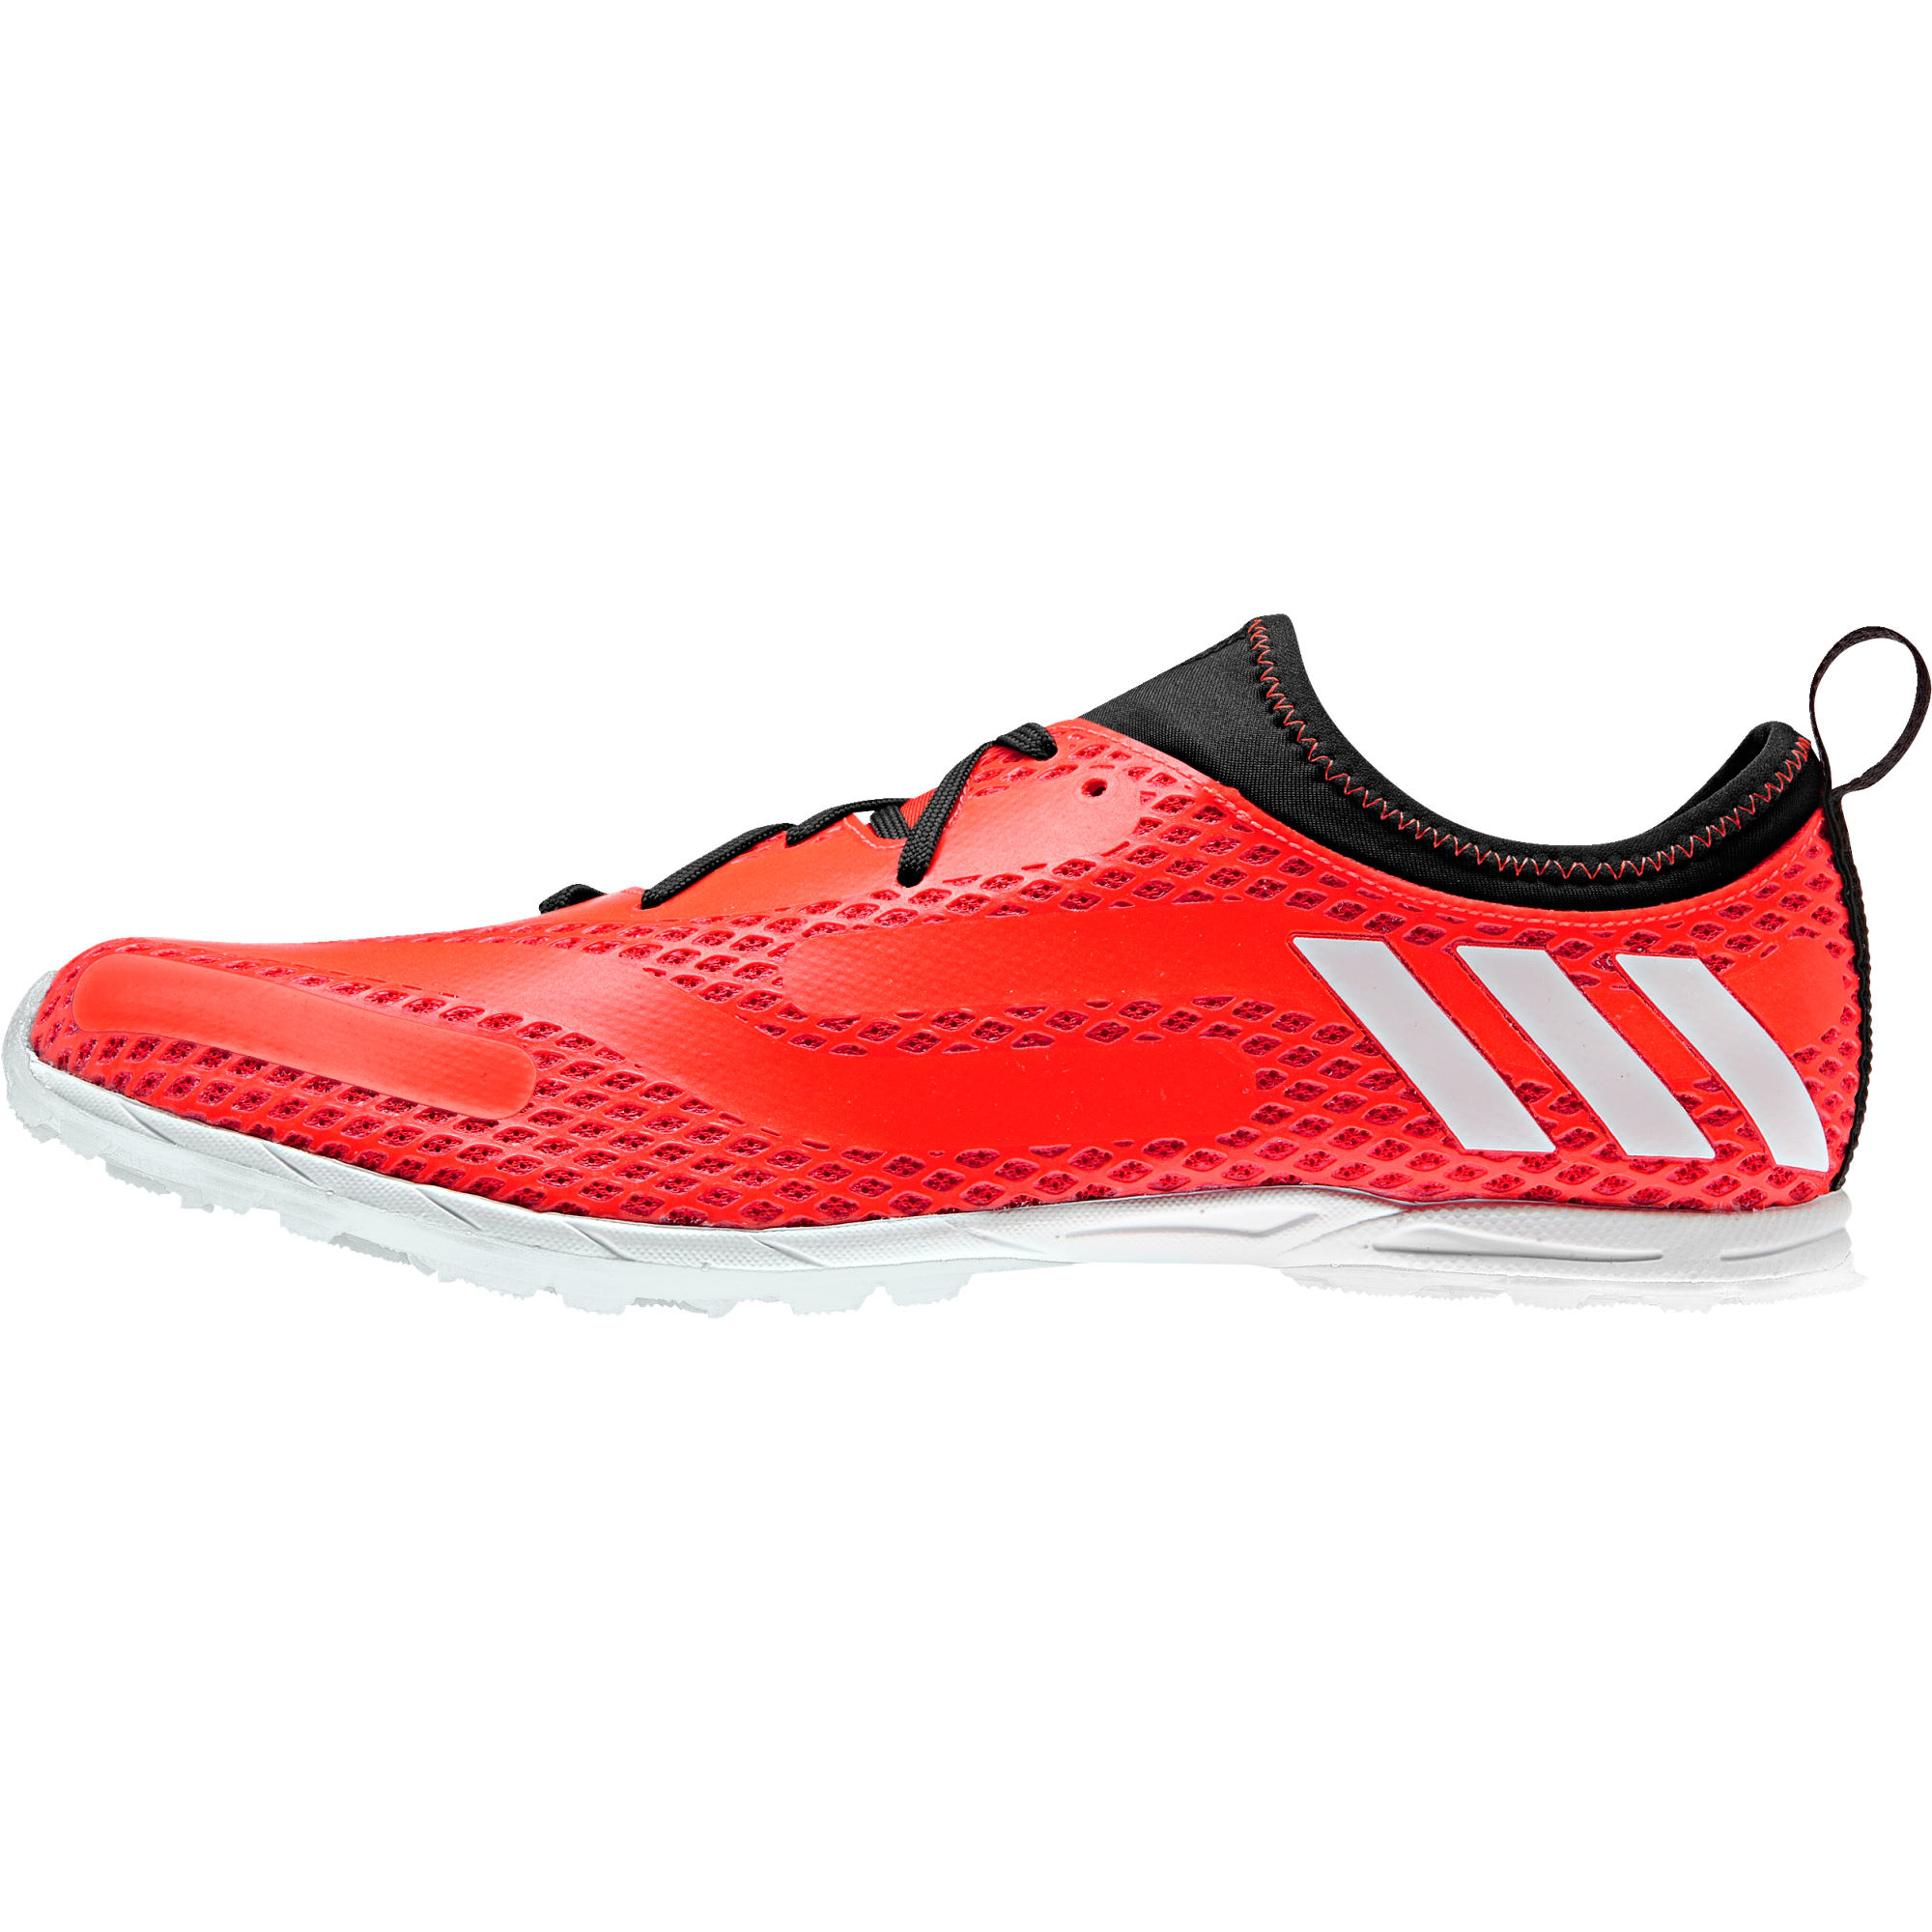 9eb3d347a4c82f adidas XCS Spikes - Cross Country Spikes - Alton Sports